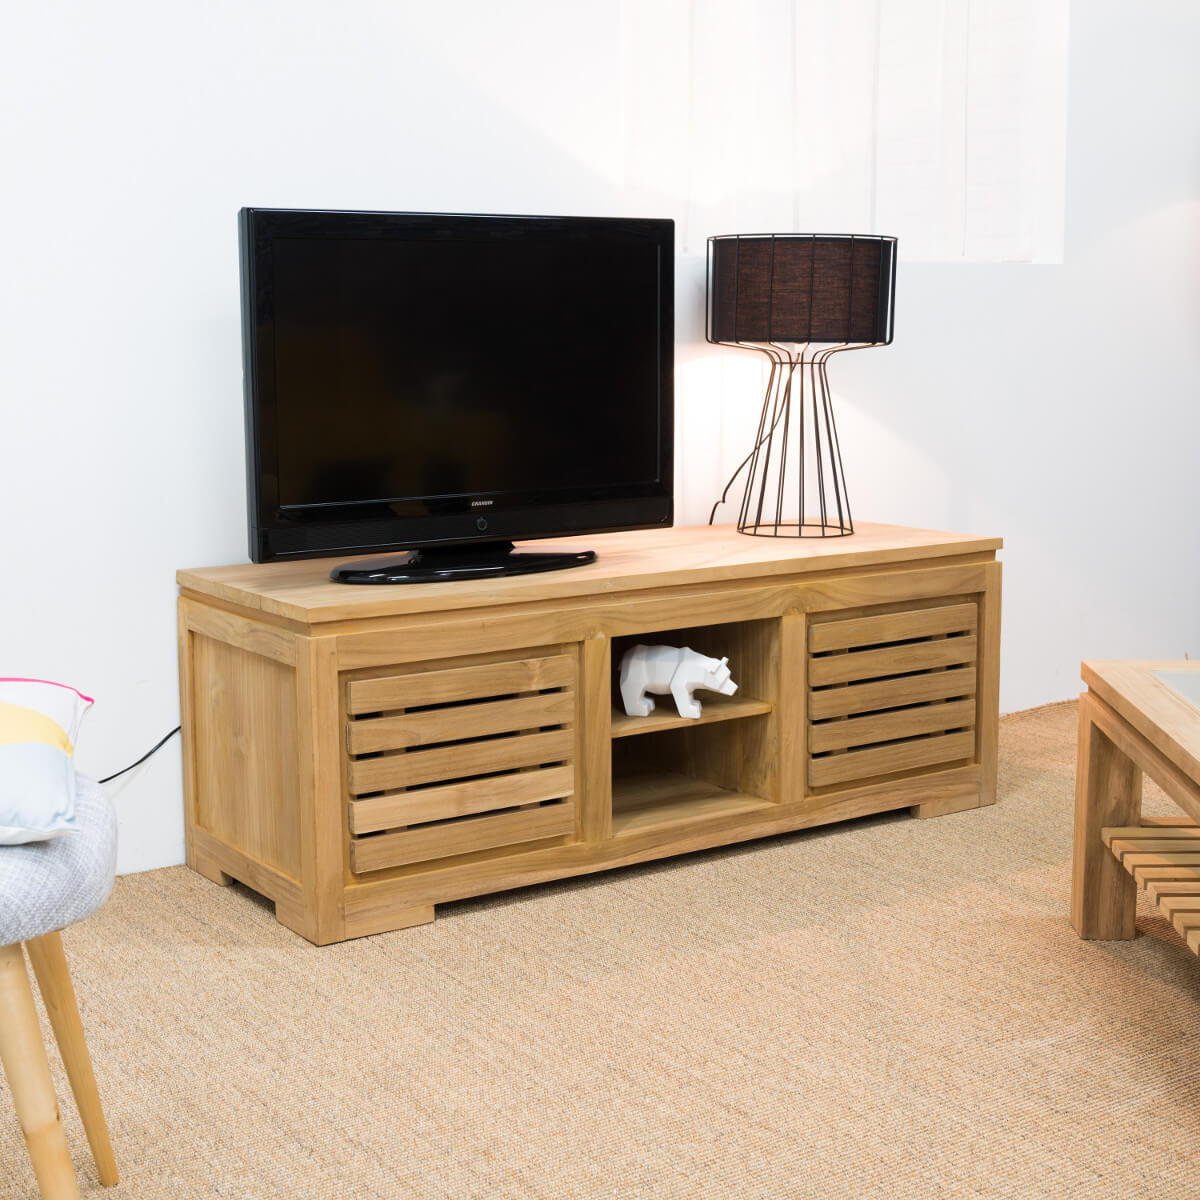 Meuble tv teck meuble tv bois naturel rectangle zen for Meuble tv longueur 100